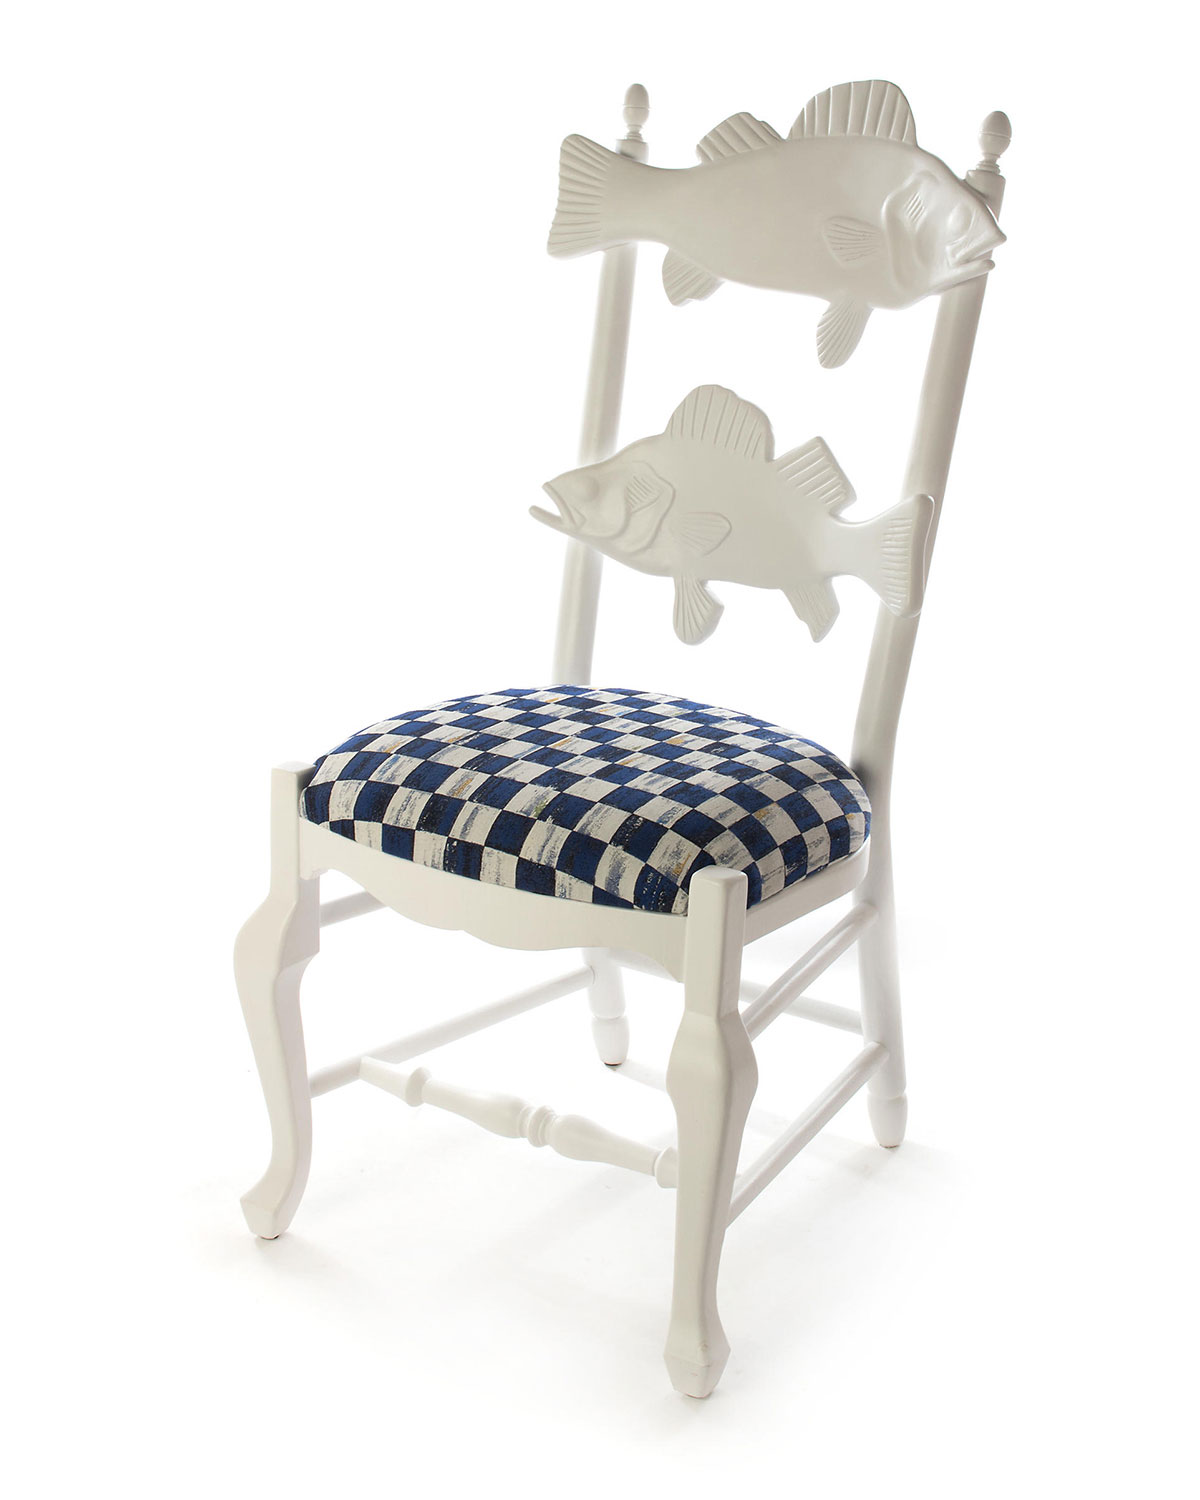 Mackenzie-Childs Furnitures OUTDOOR ROYAL CHECK FISH CHAIR